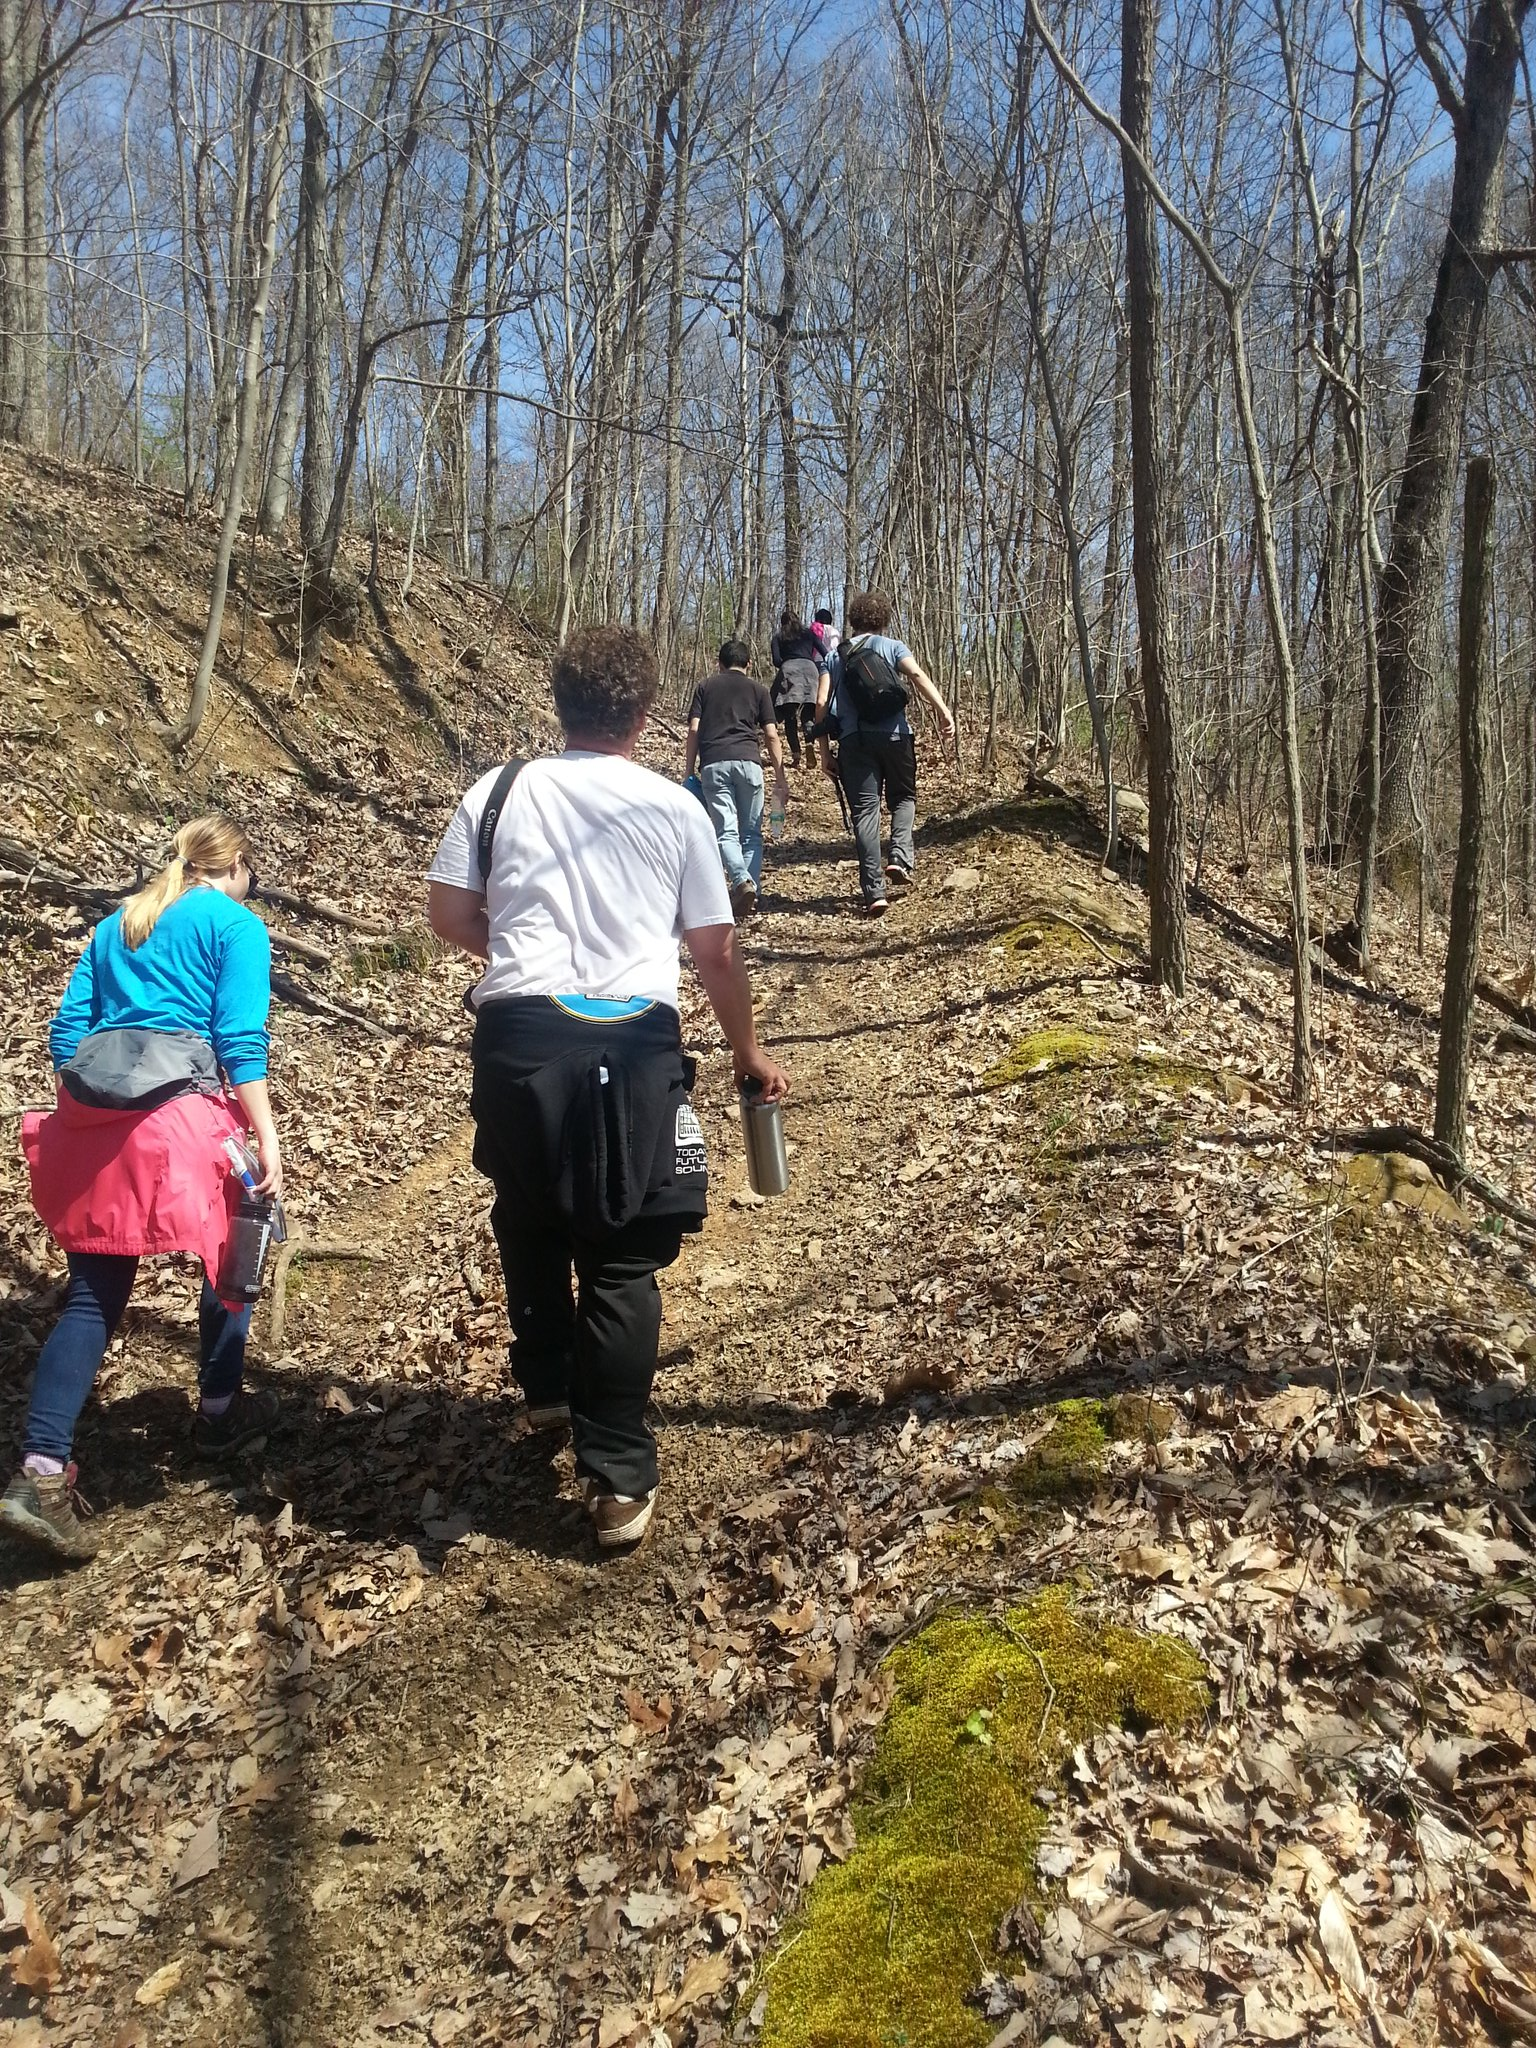 #fulbrightamizade,#Appalachia, hiking with Tim from Wellness Center, Williamson, WV. commitment brings to the top. https://t.co/eyHI5tJ8W9